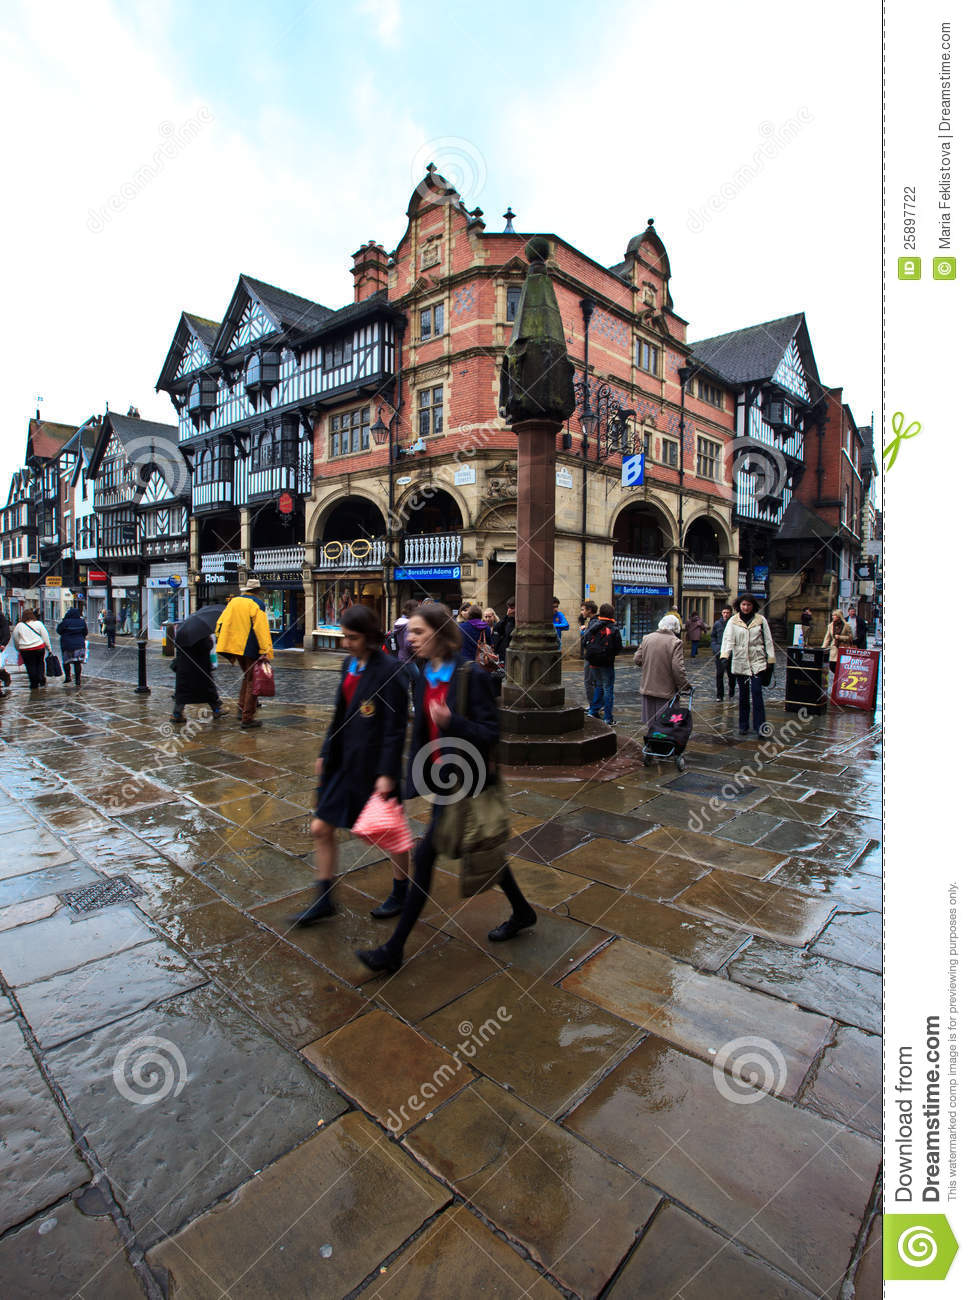 Chester city center in busy midday